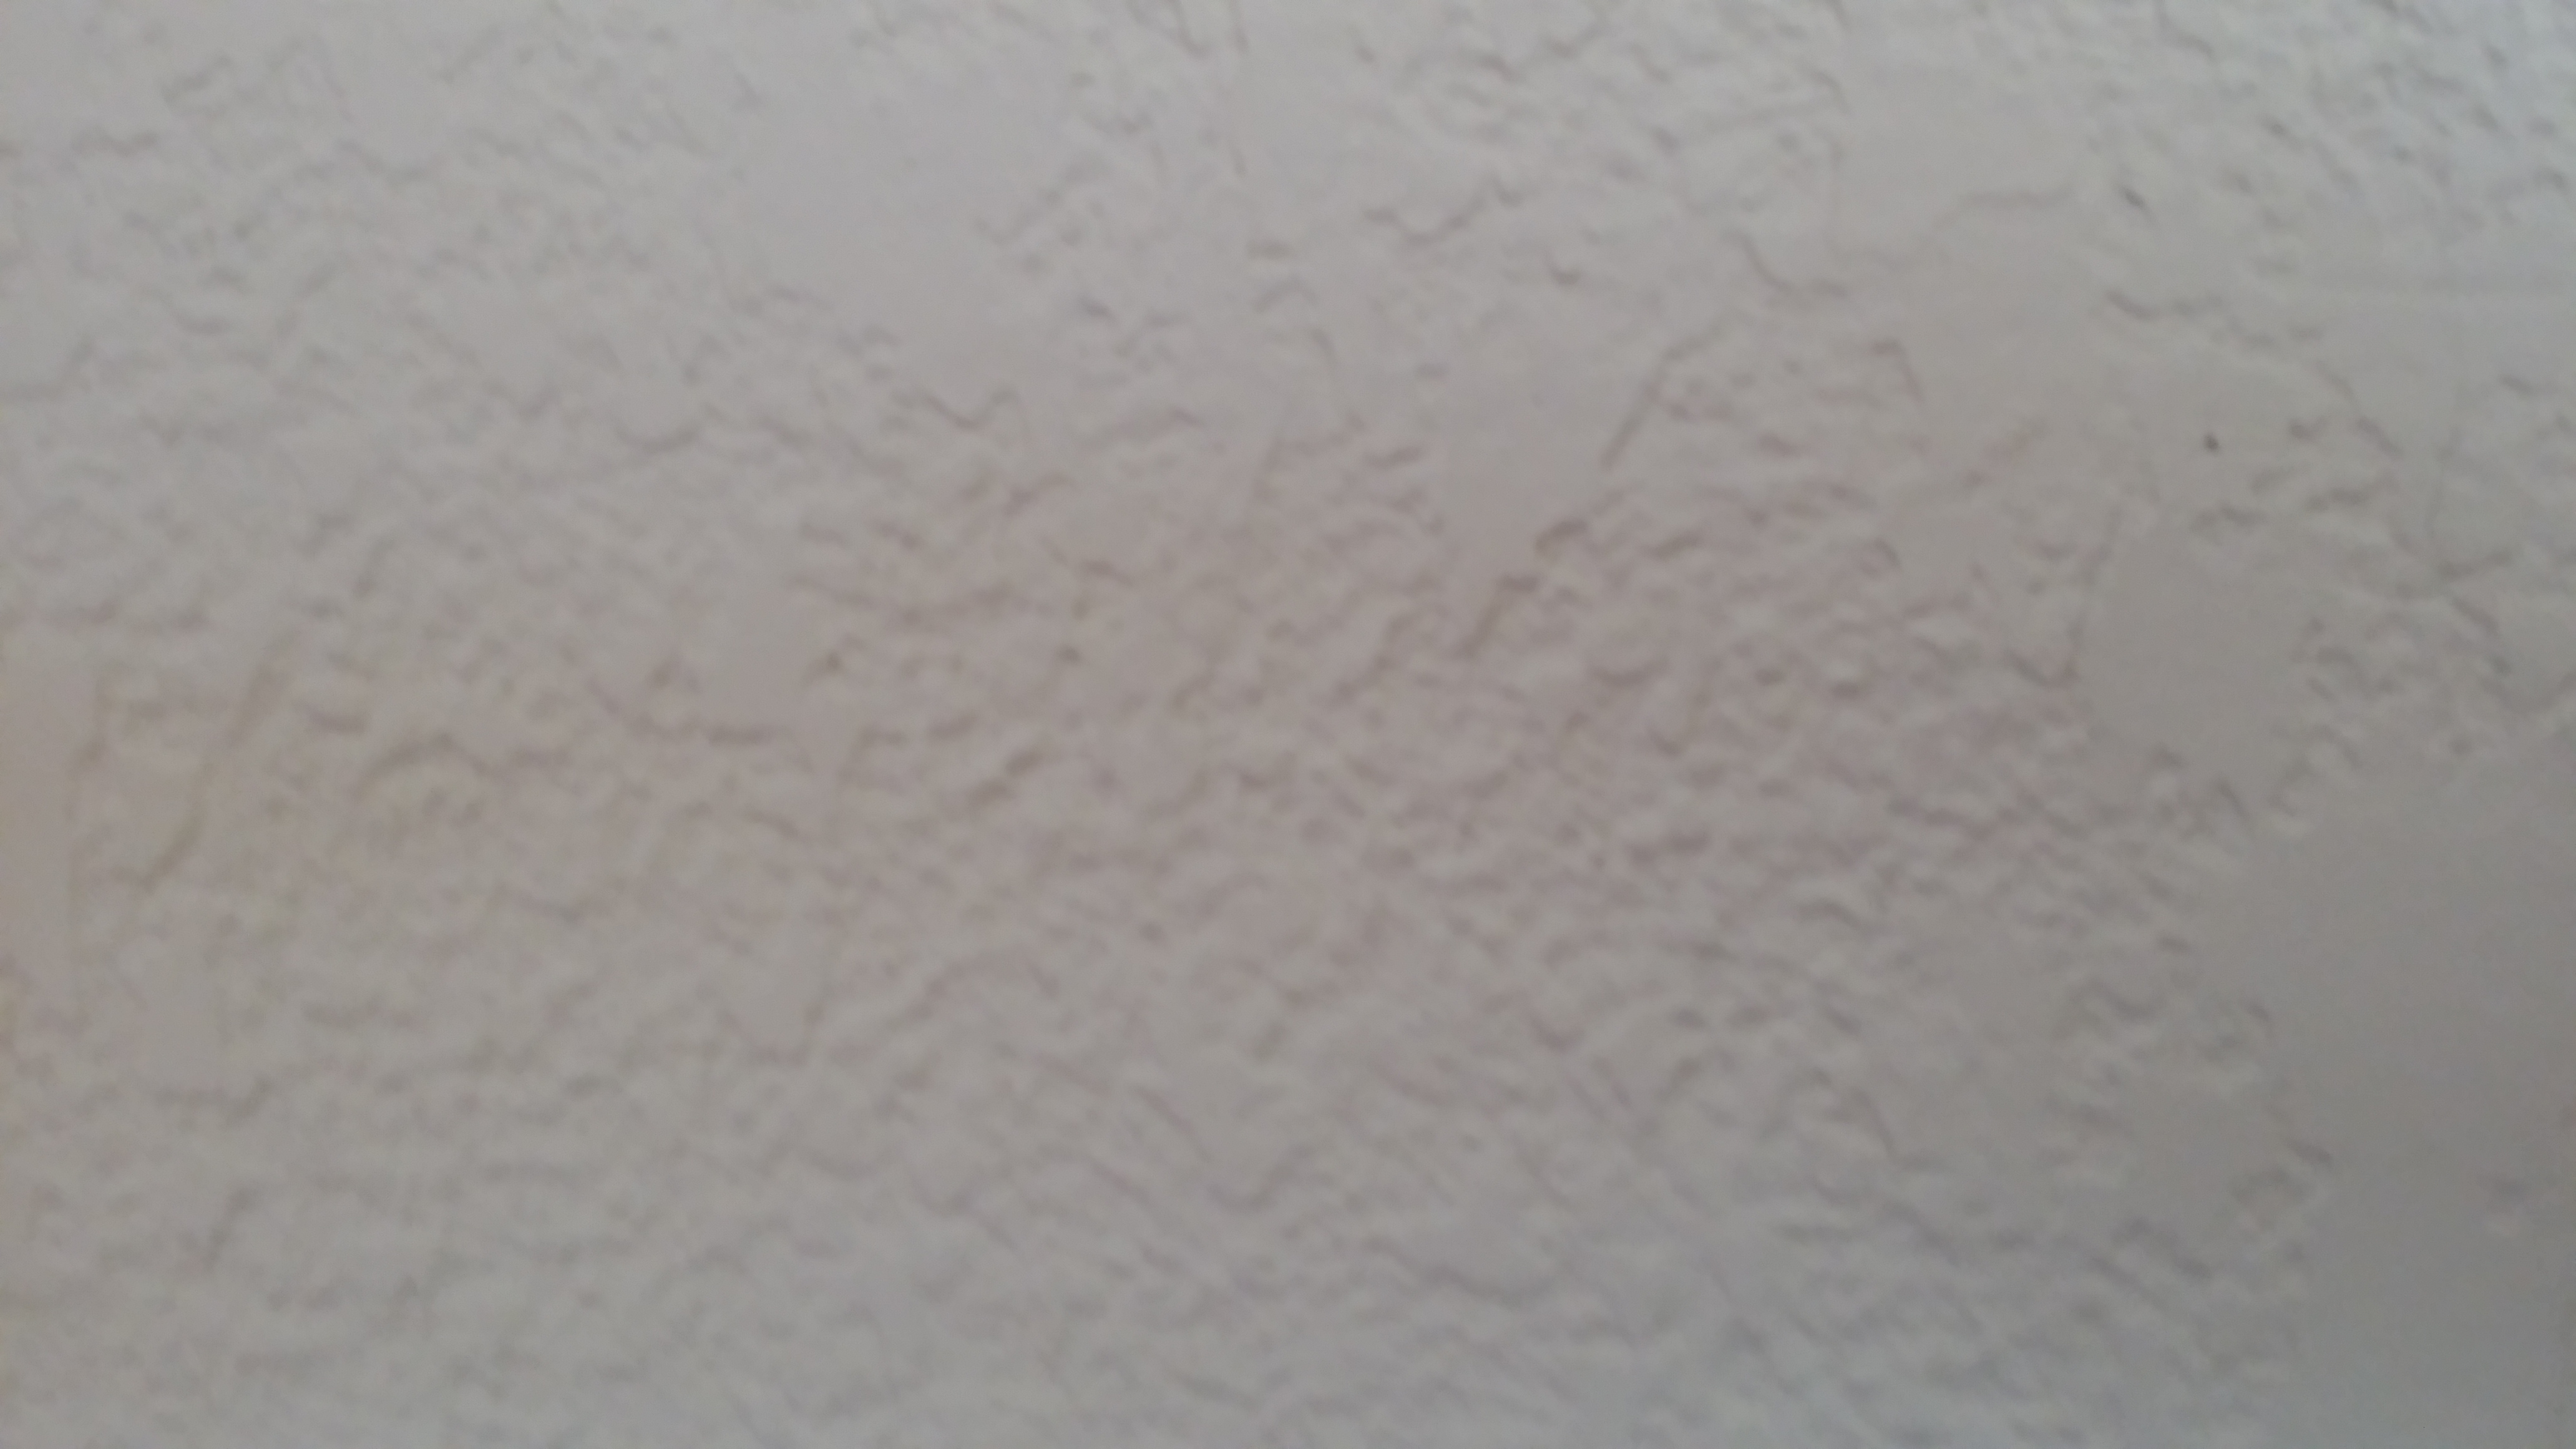 Knockdown Textured Ceiling Wall Repair Cascade Painting And Restoration Cascade Painting